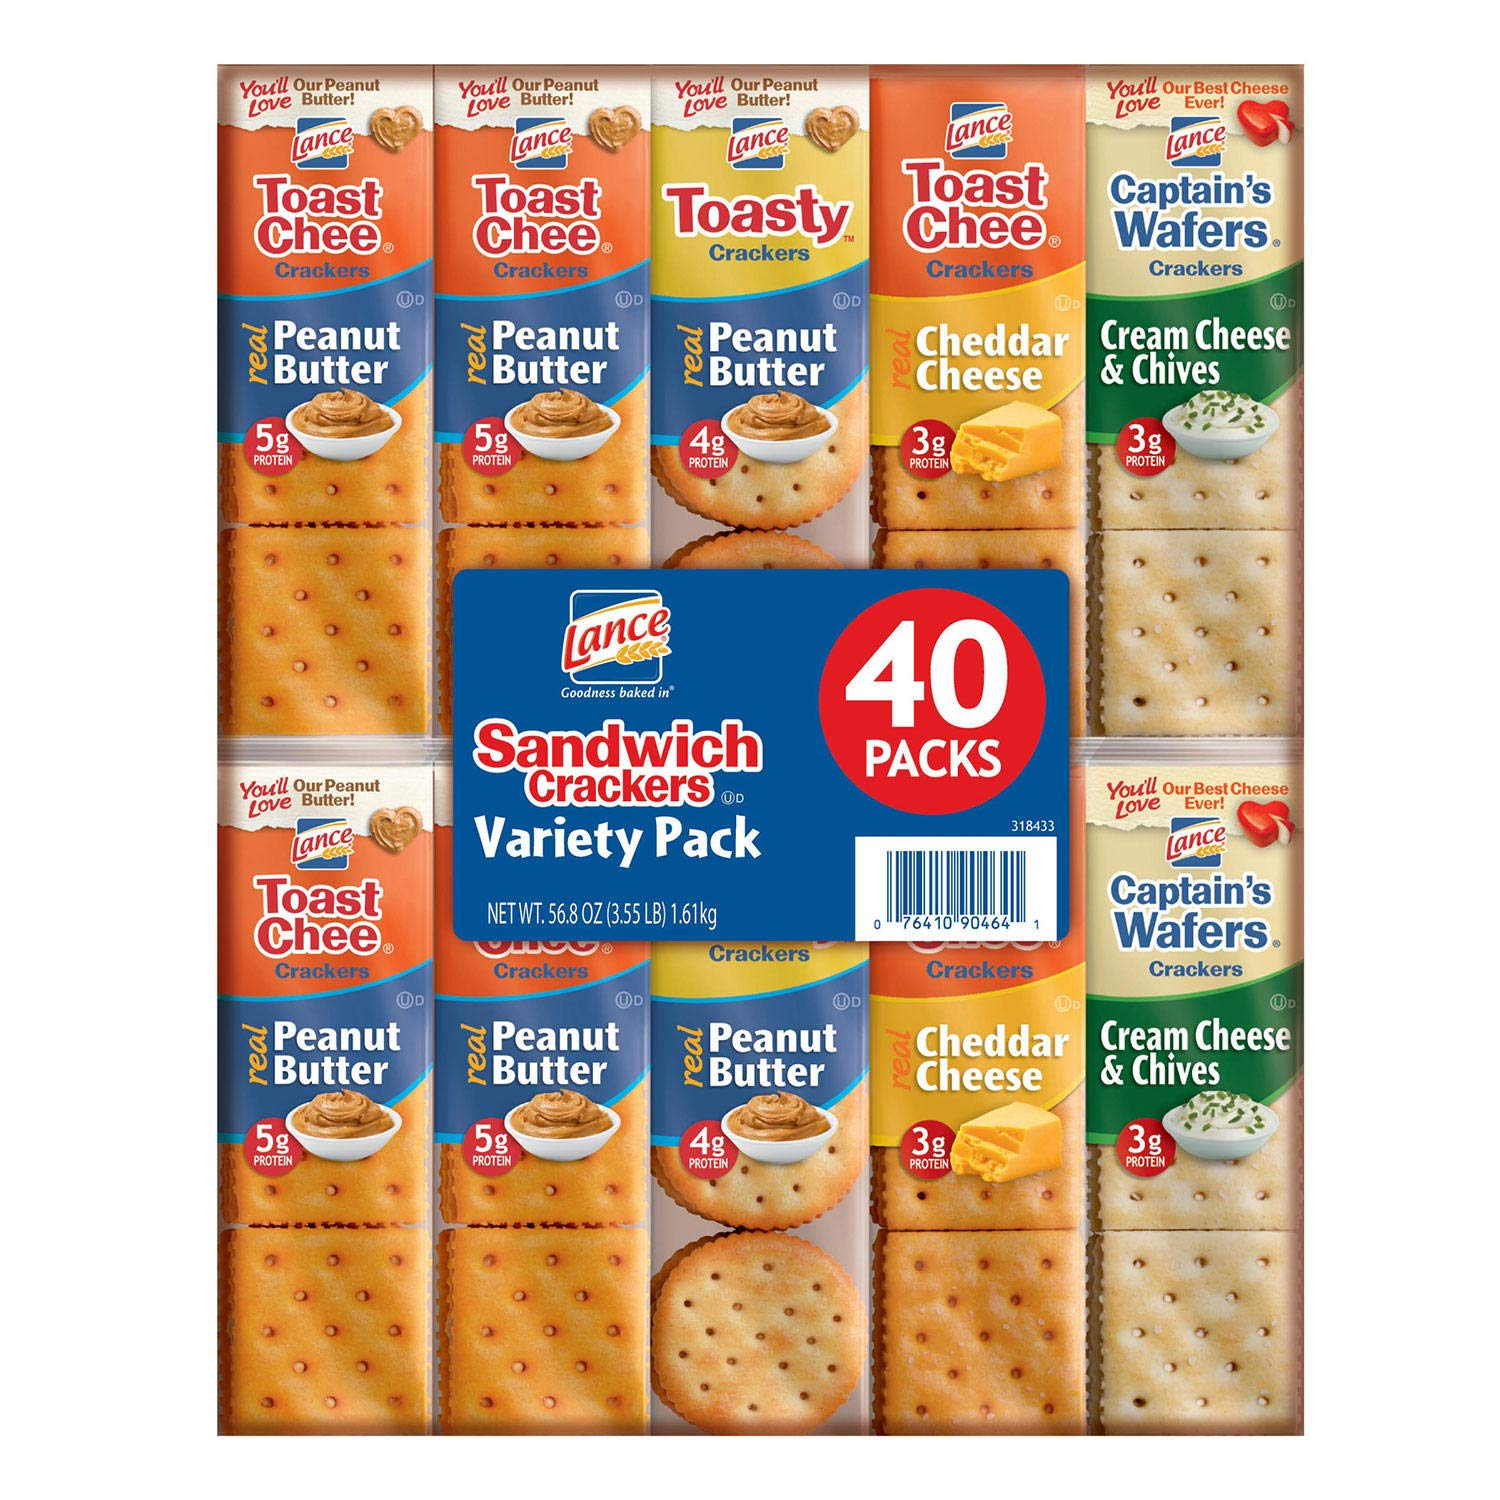 EVAXO Lance Sandwich Crackers, Variety Pack (1.41 oz., 40 ct.) #S